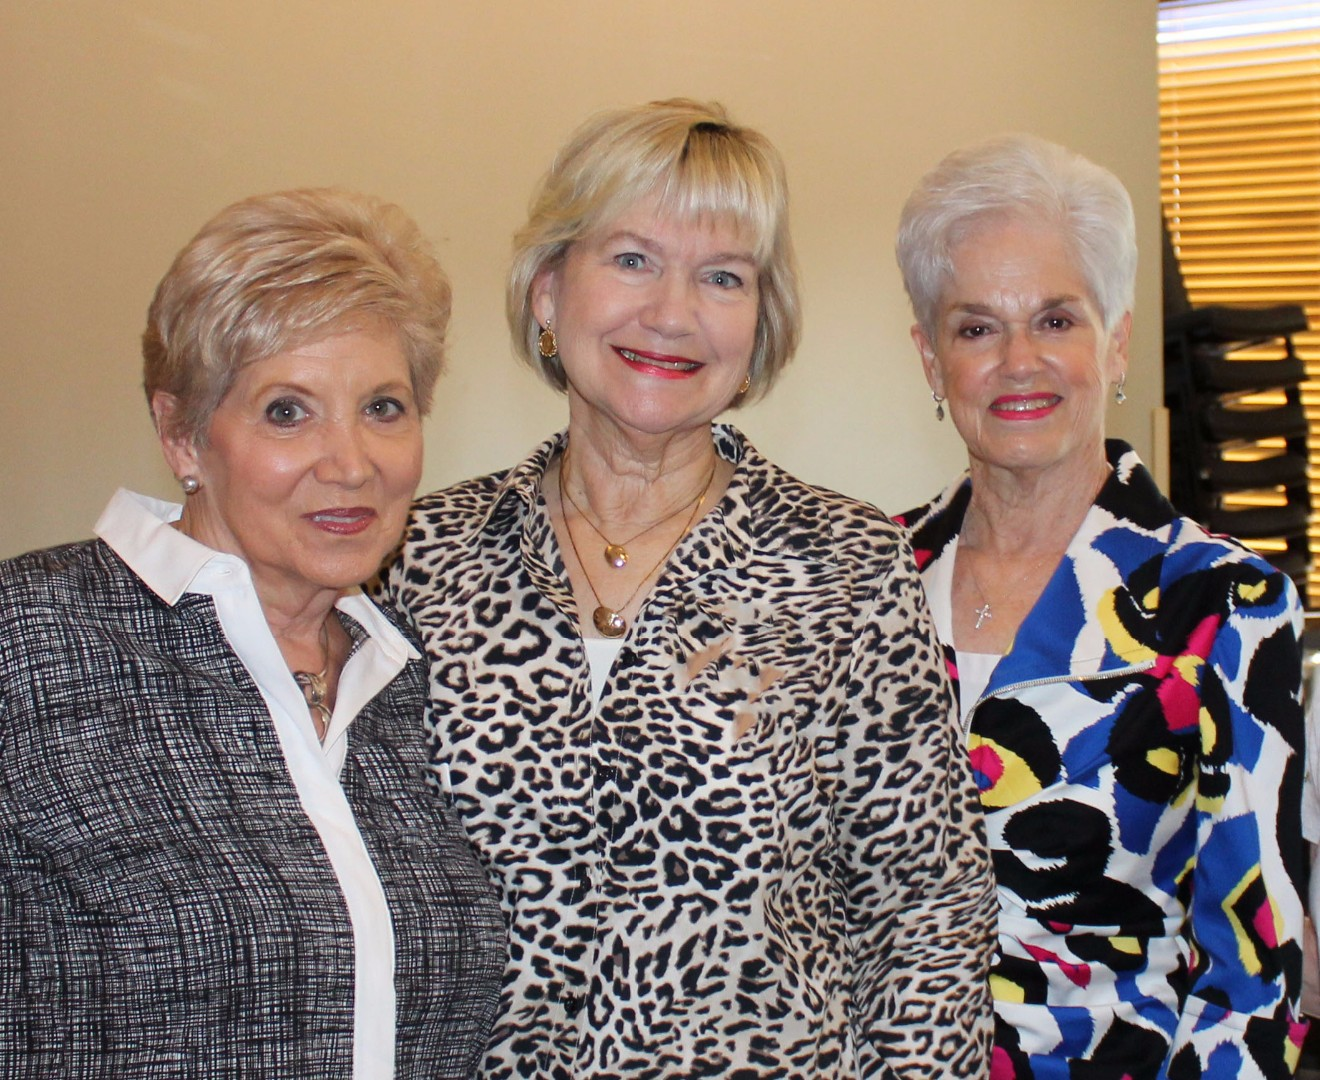 Annette Hankins, Barbie James, Susan Lamb